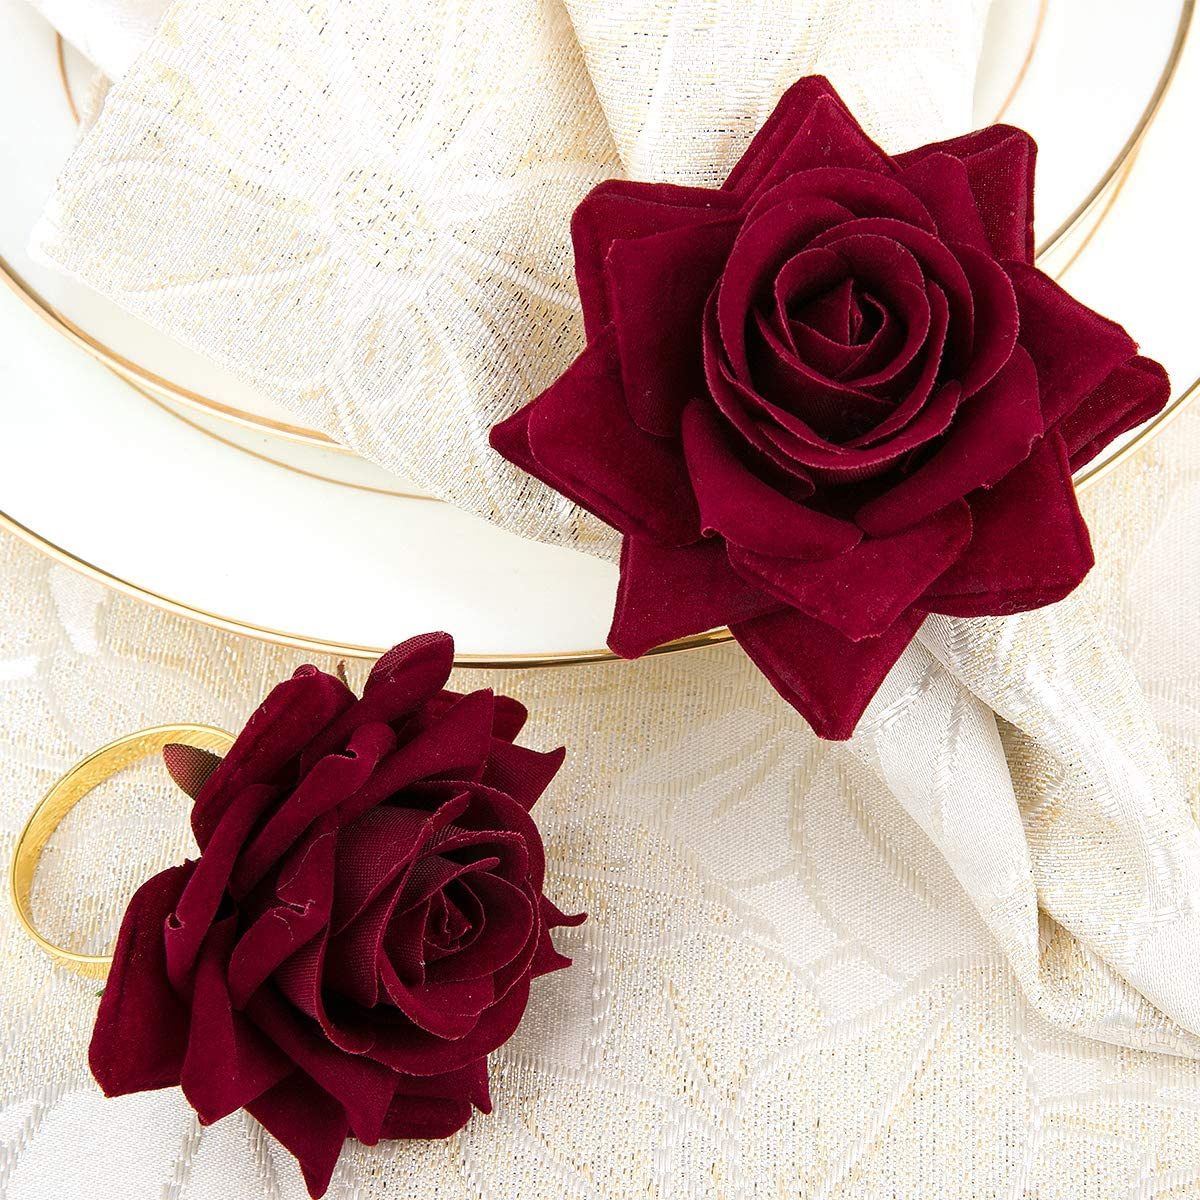 Designed with Red Rose Ornament for Romantic Wedding Party Daily Use Home Improvement Decoration SUQ I OME Set of 6 Valentines Rose Napkin Rings Set of 6,Red Rose